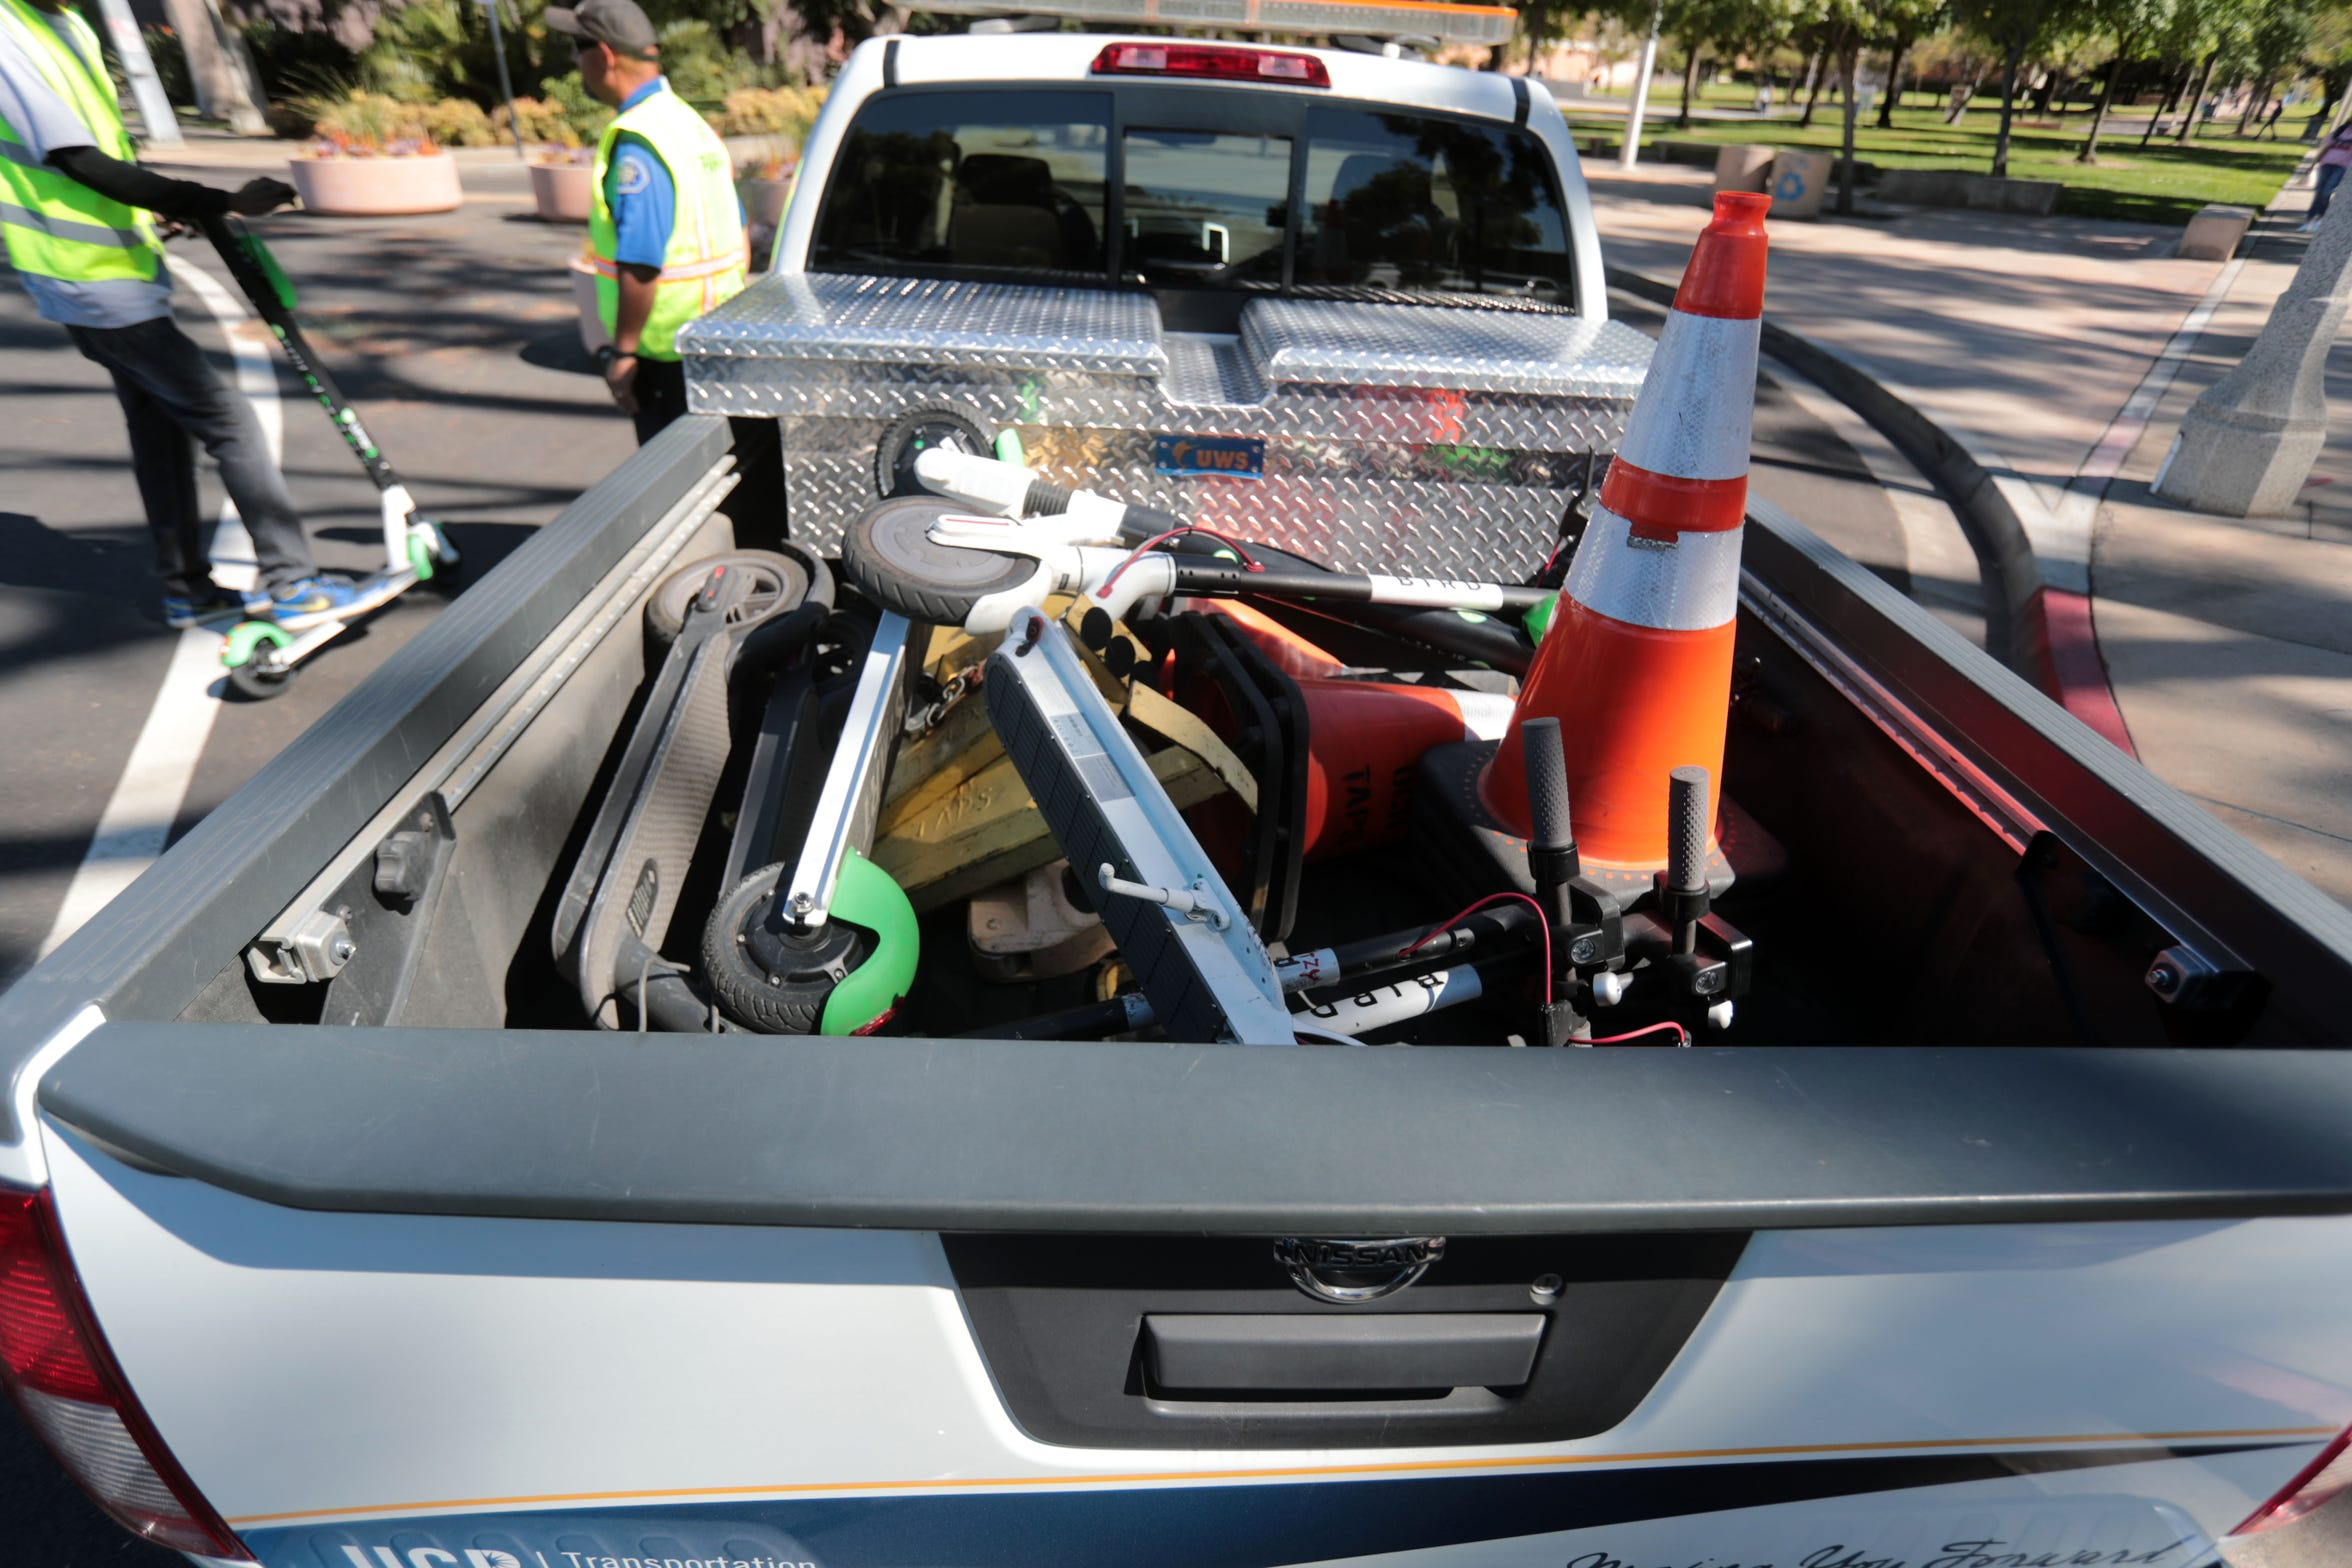 Lime and Bird electric scooters are confiscated by parking enforcement officials after being found scattered around the the University of California, Riverside, campus on Oct. 18, 2018.